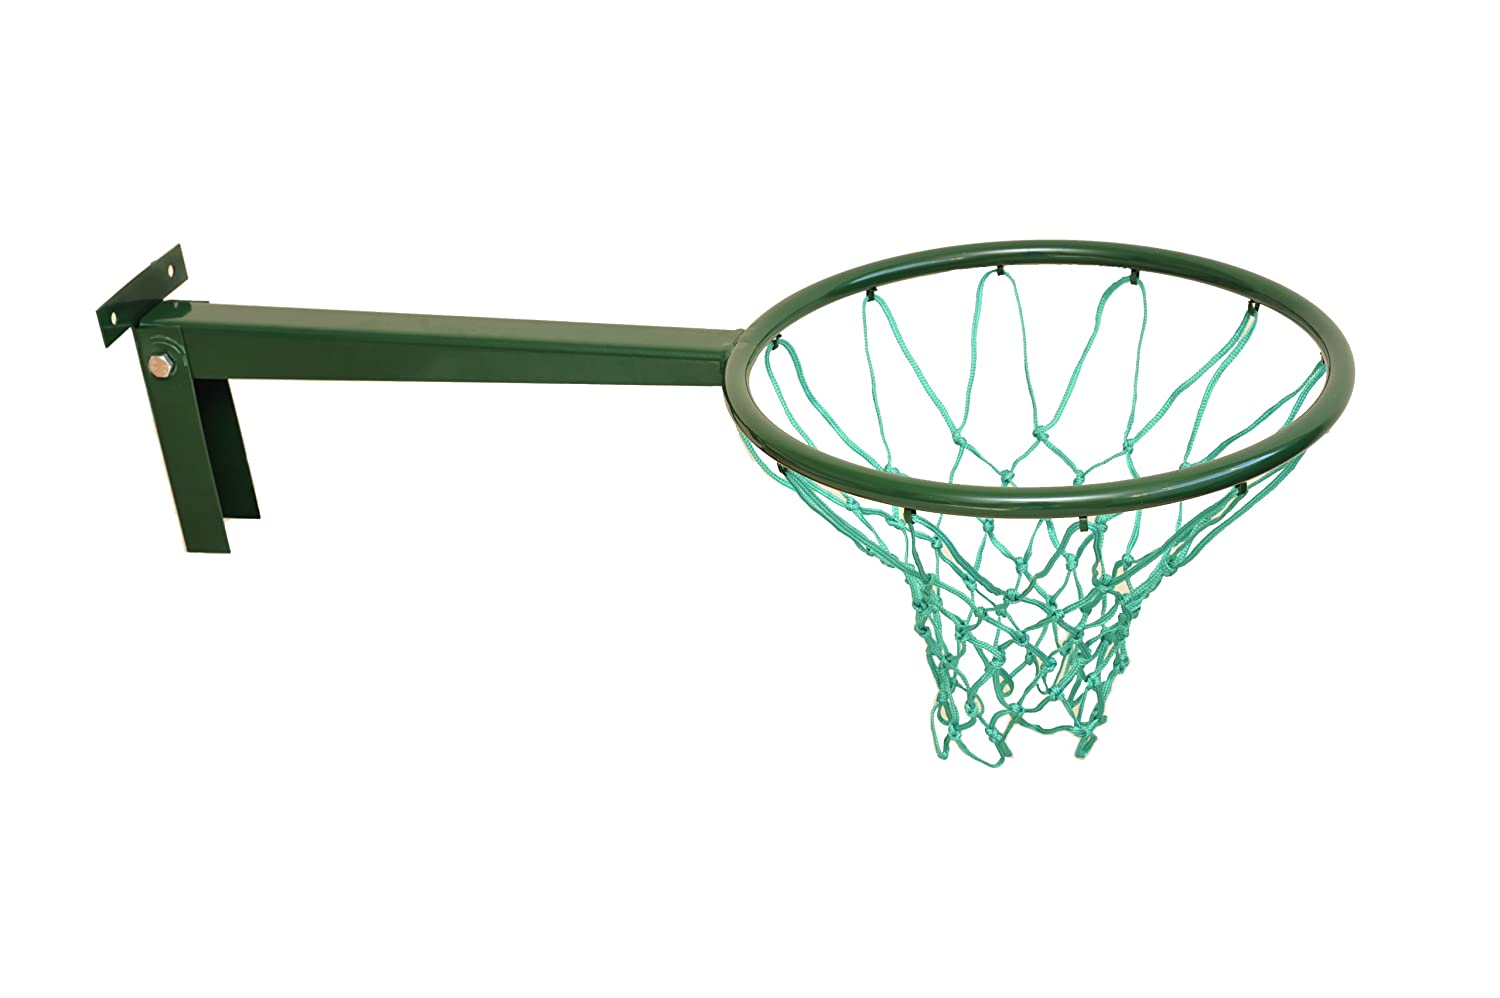 Avonstar Trading Co British Made Long Reach Removable Netball Ring with robust bracket and top quality 3mm twine Ltd.